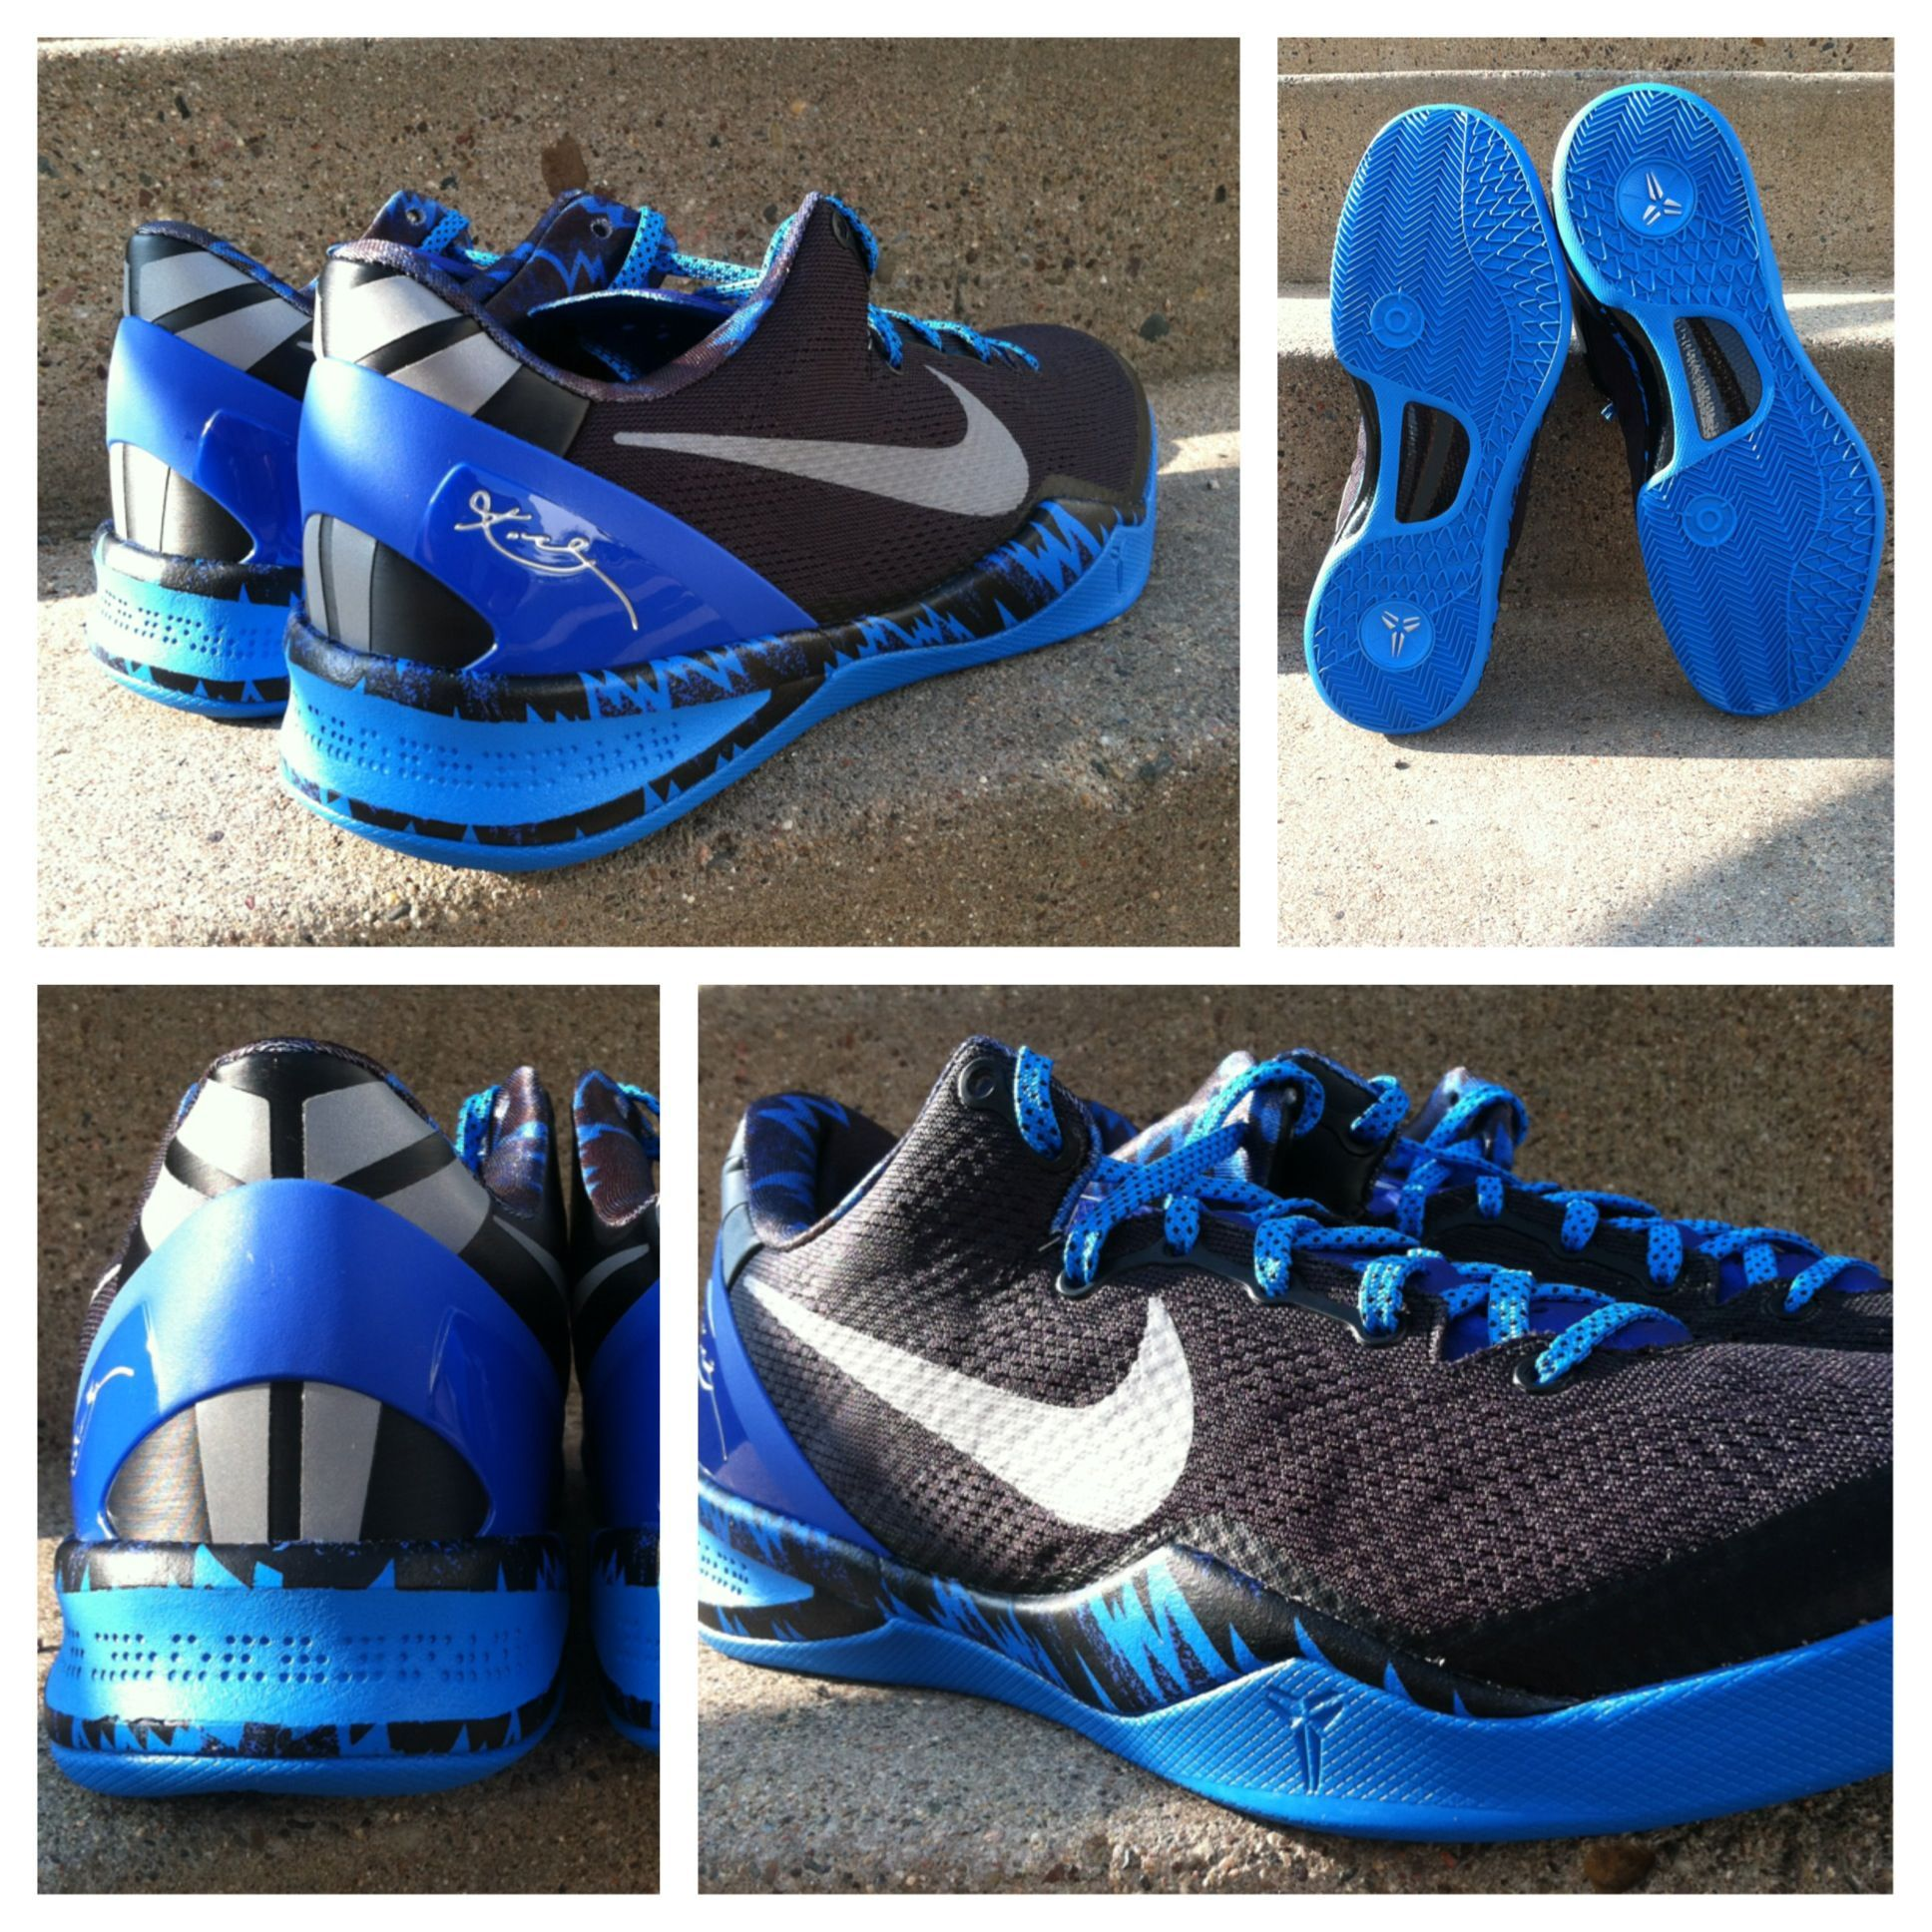 Hit the court in the Nike Kobe 8 System this season. More colorways  available.